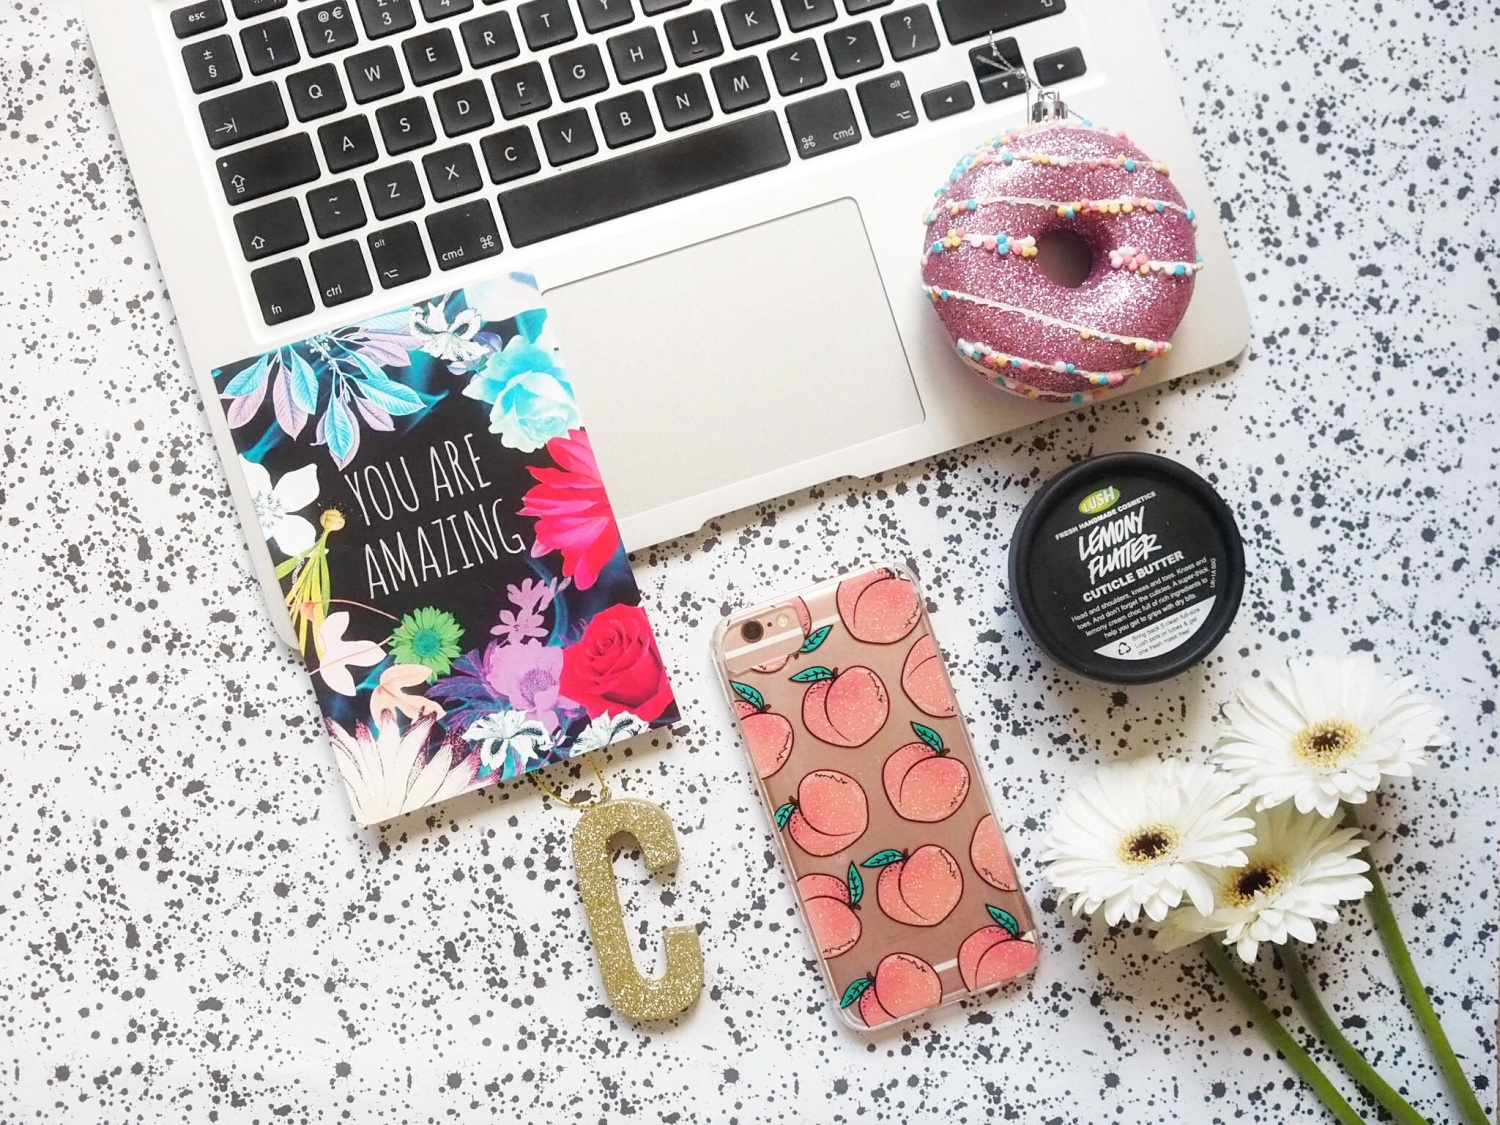 blogger blues and an Instagram ban